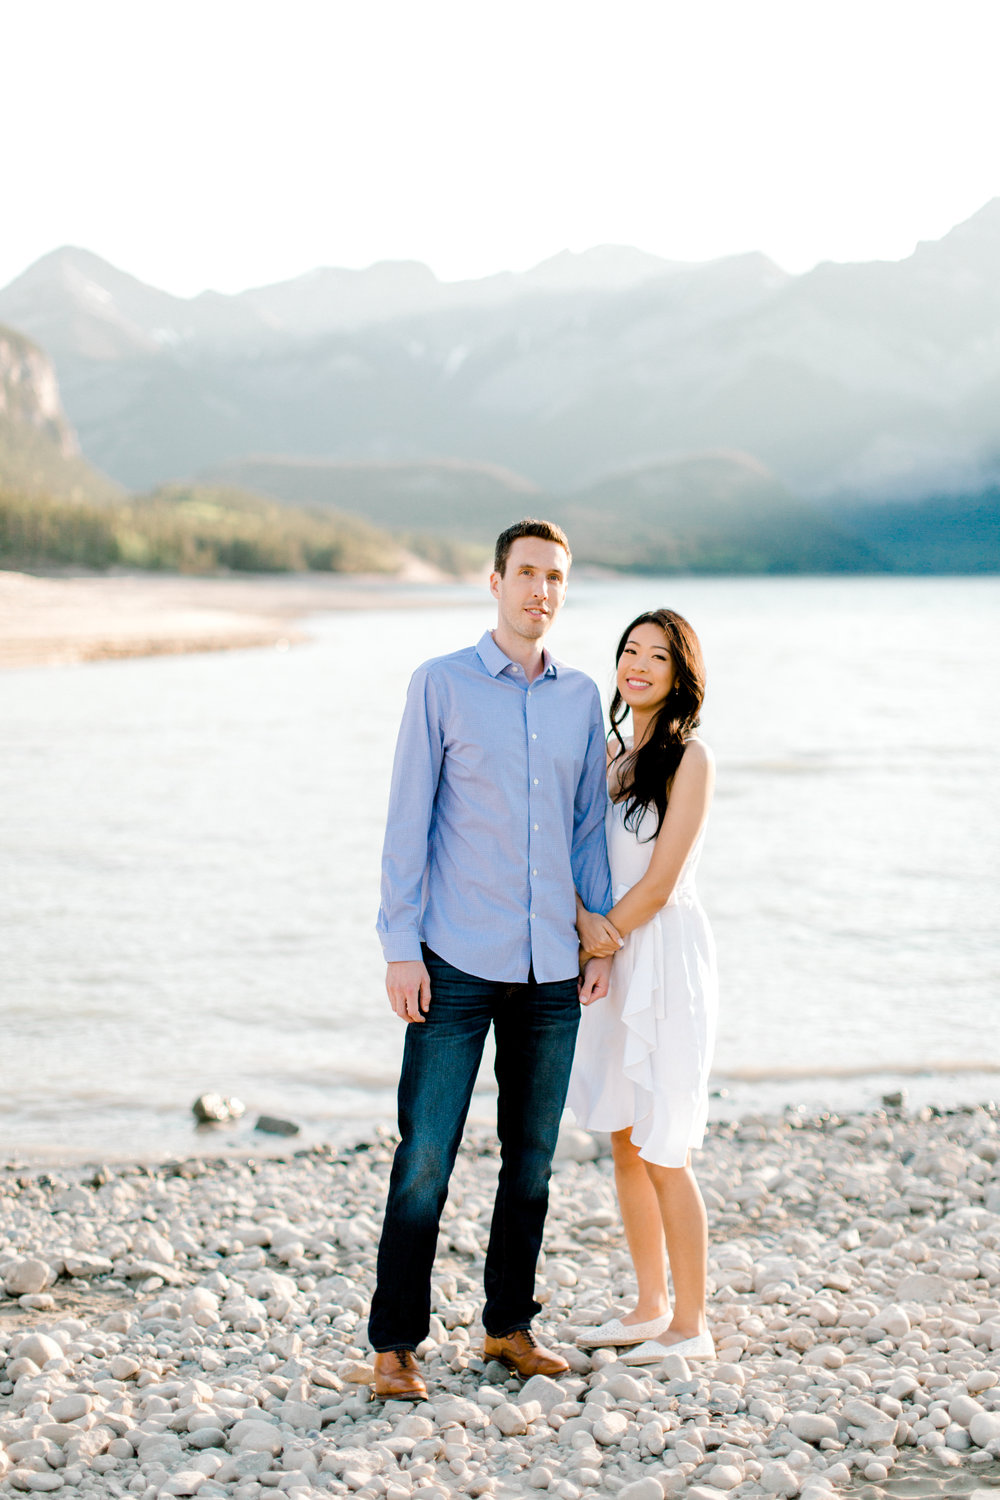 OliviaAndrewEngagement(16of373).jpg